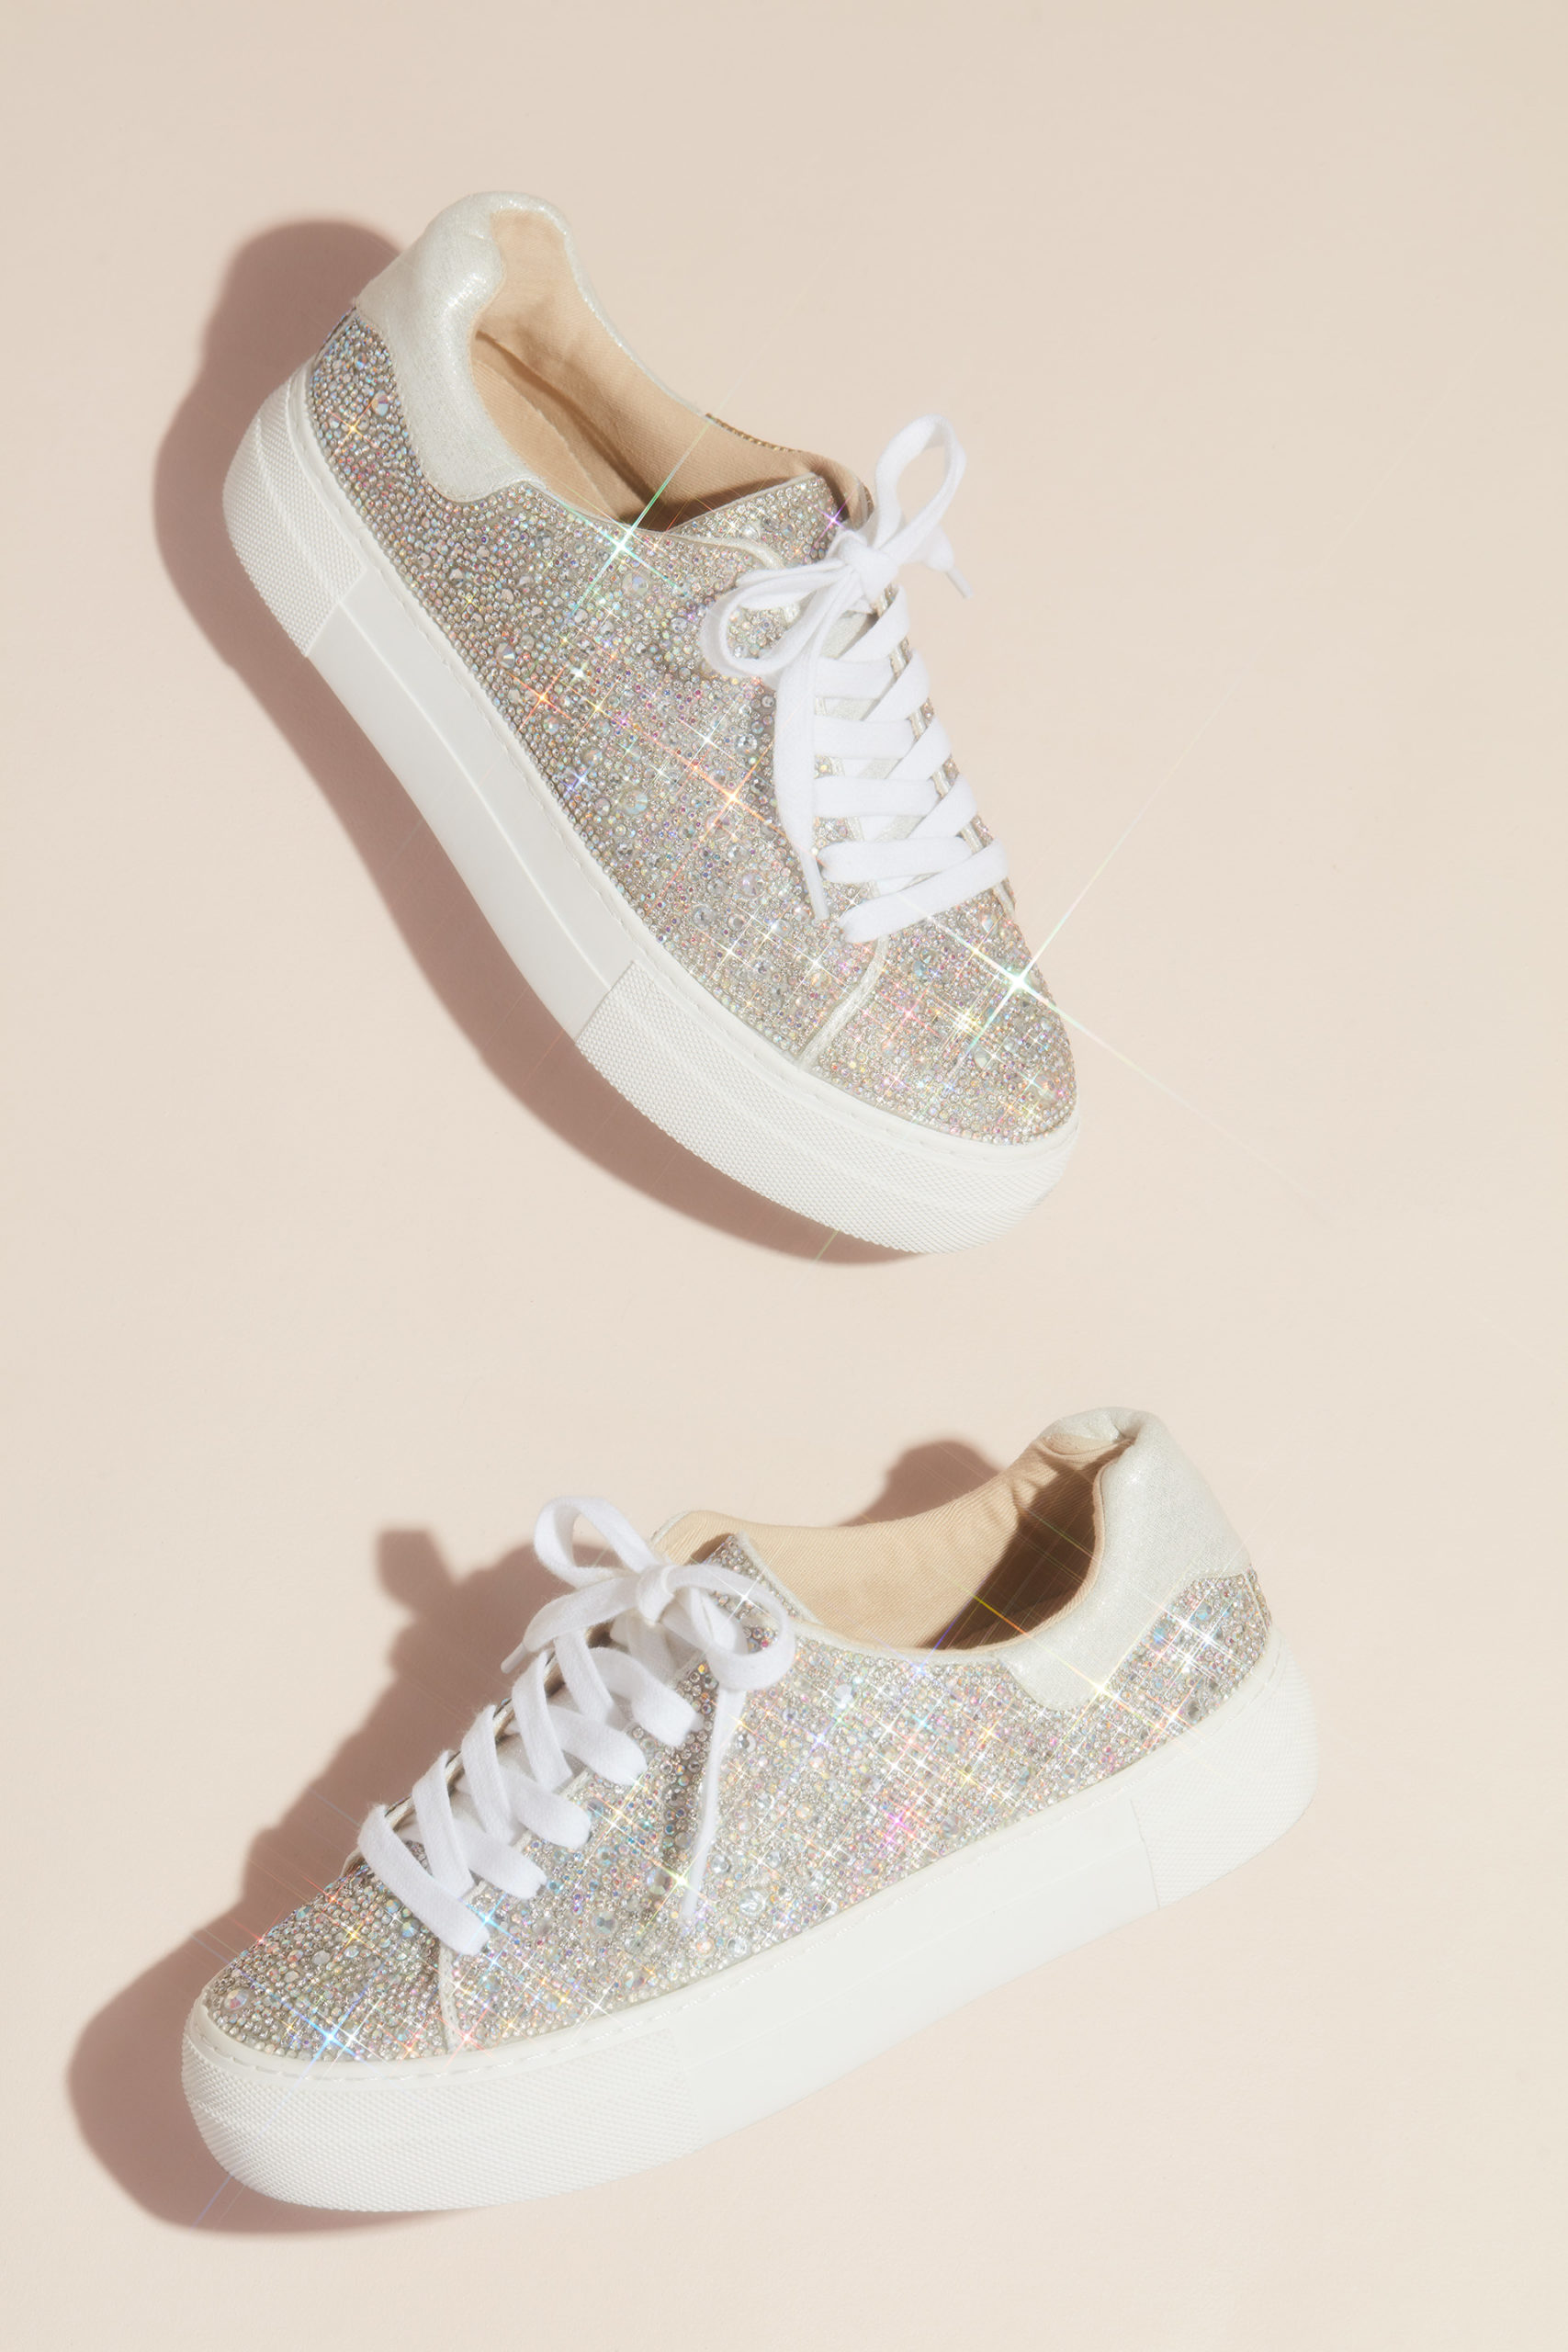 sparkly sneakers for your quinceañera